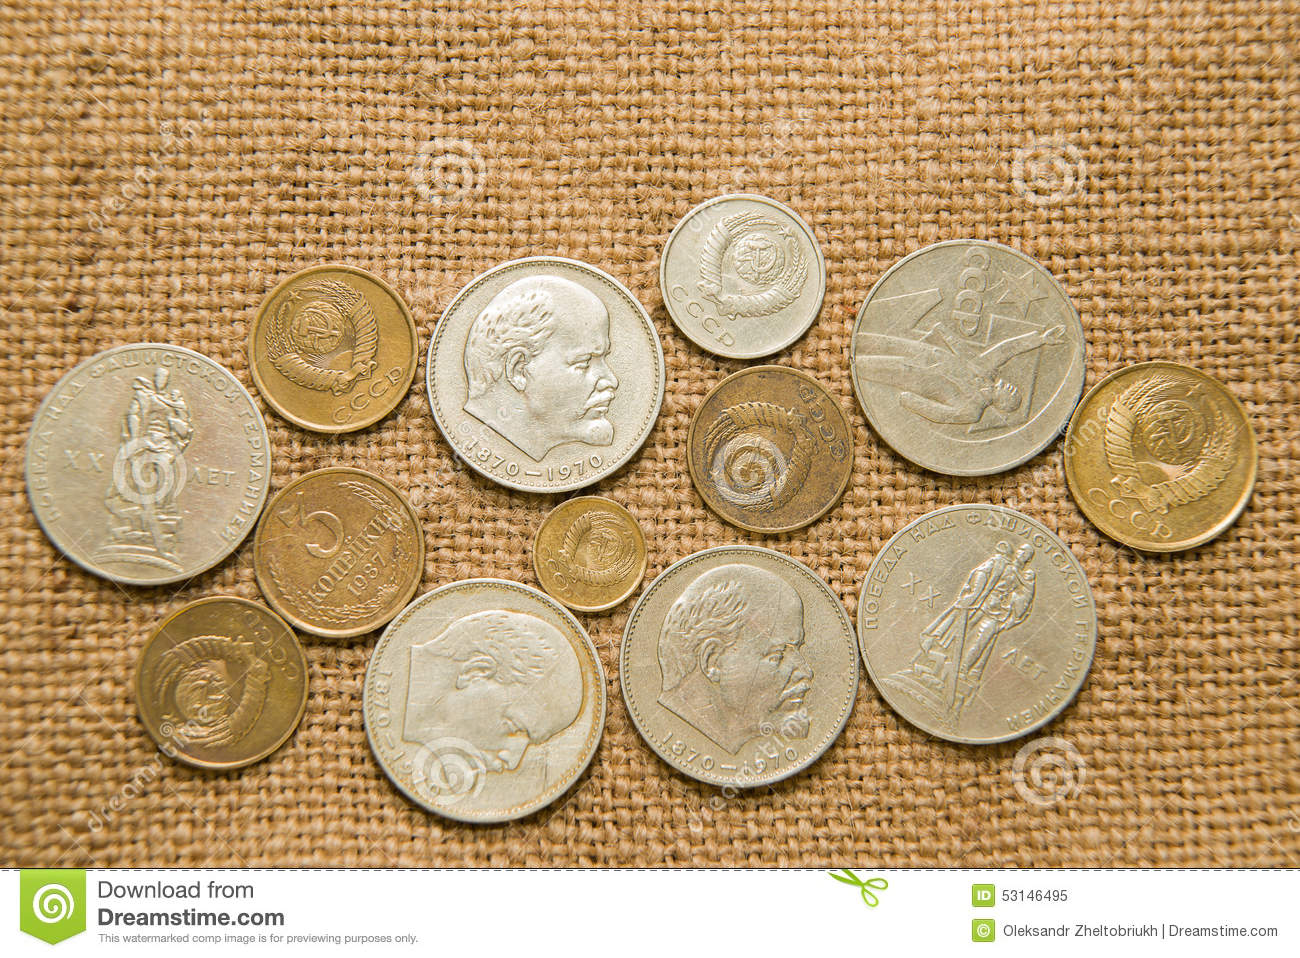 Where to sell coins of the USSR 70